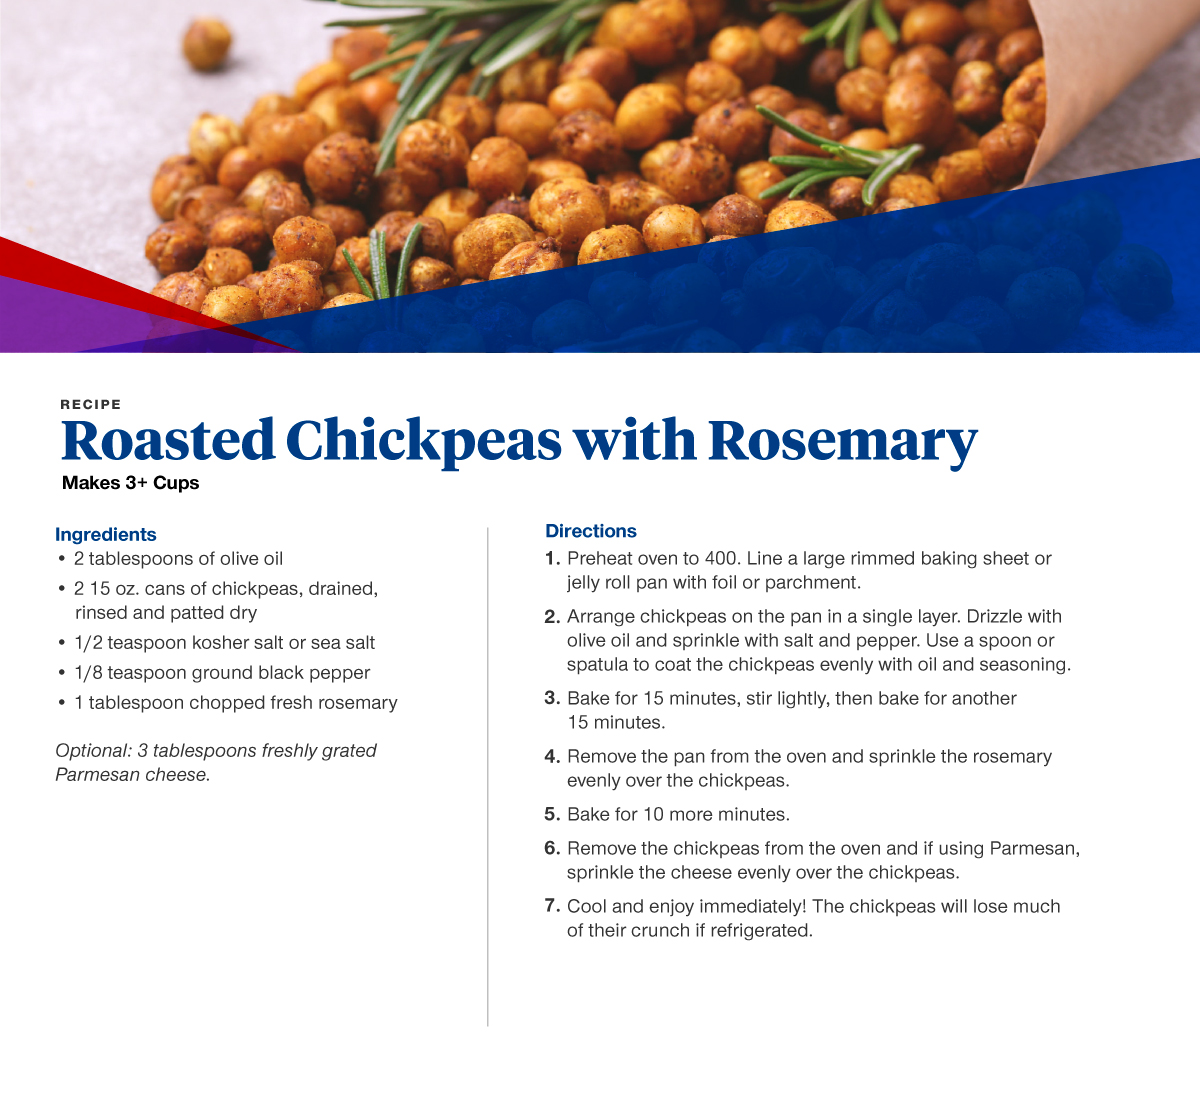 Roasted chickpeas with rosemary recipe card, with ingredients and directions also listed below.